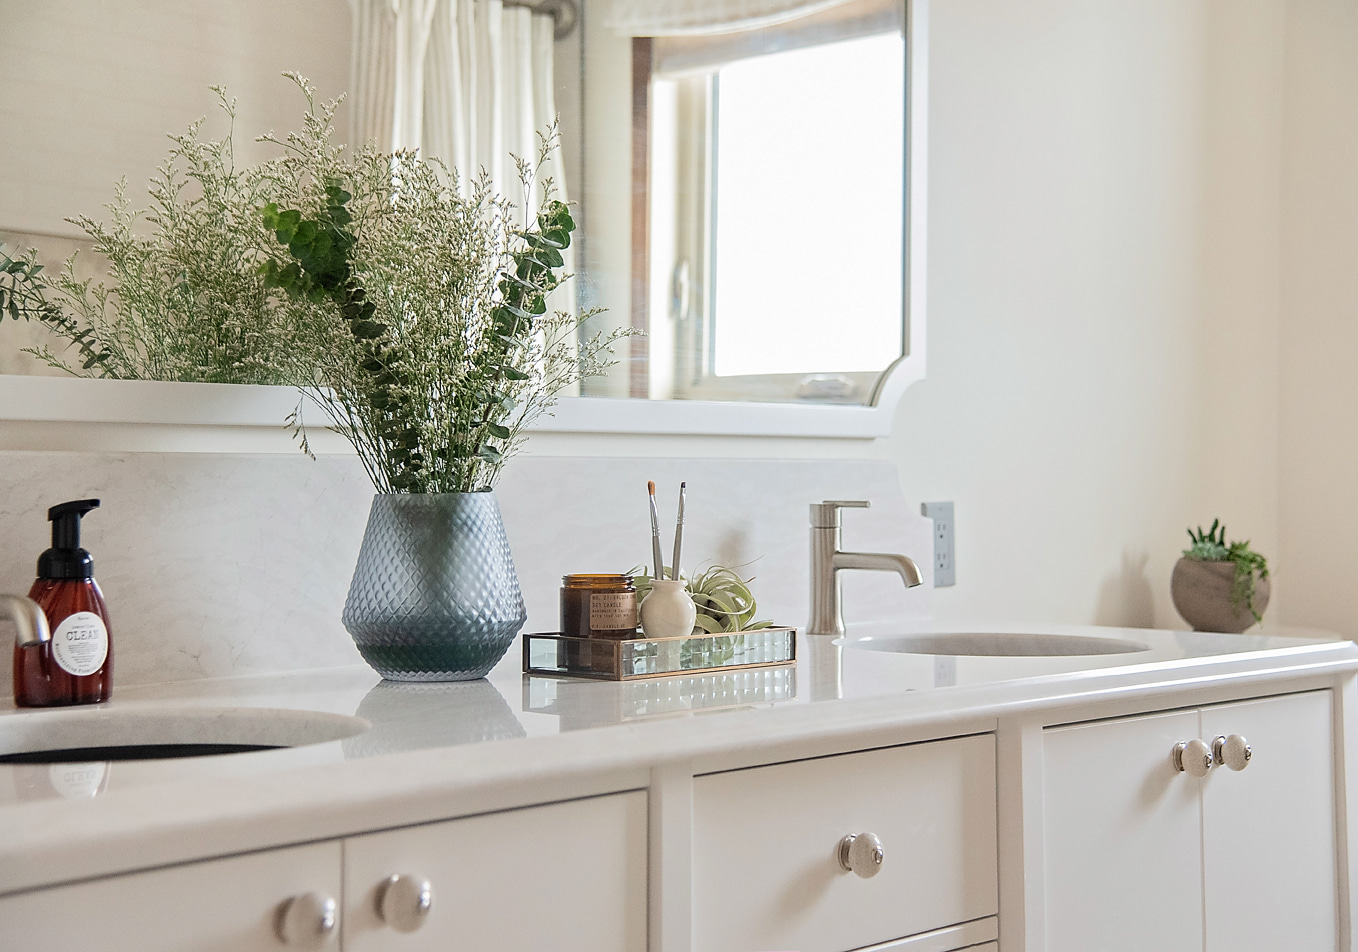 FARMER'S DAUGHTER INTERIORS: WAILEA BATH